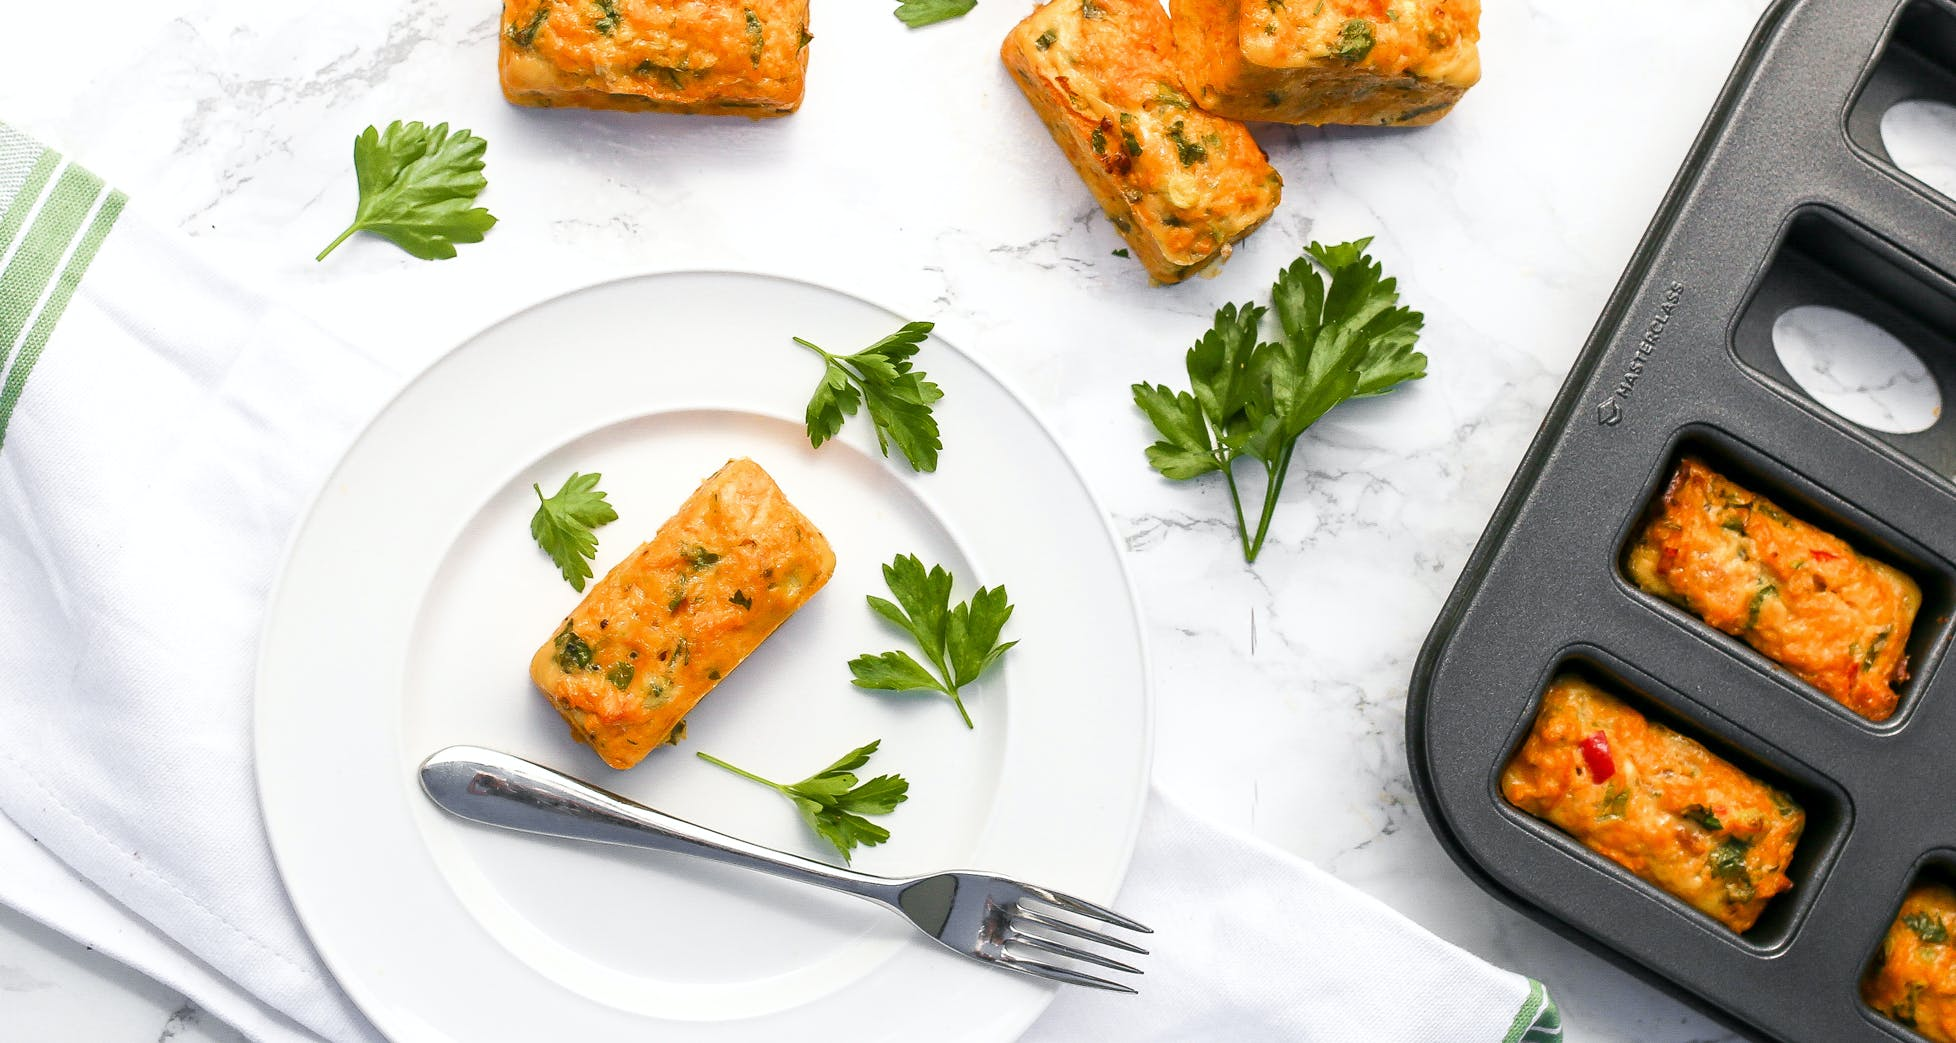 Sweet Potato, Chili and Coriander Frittatas